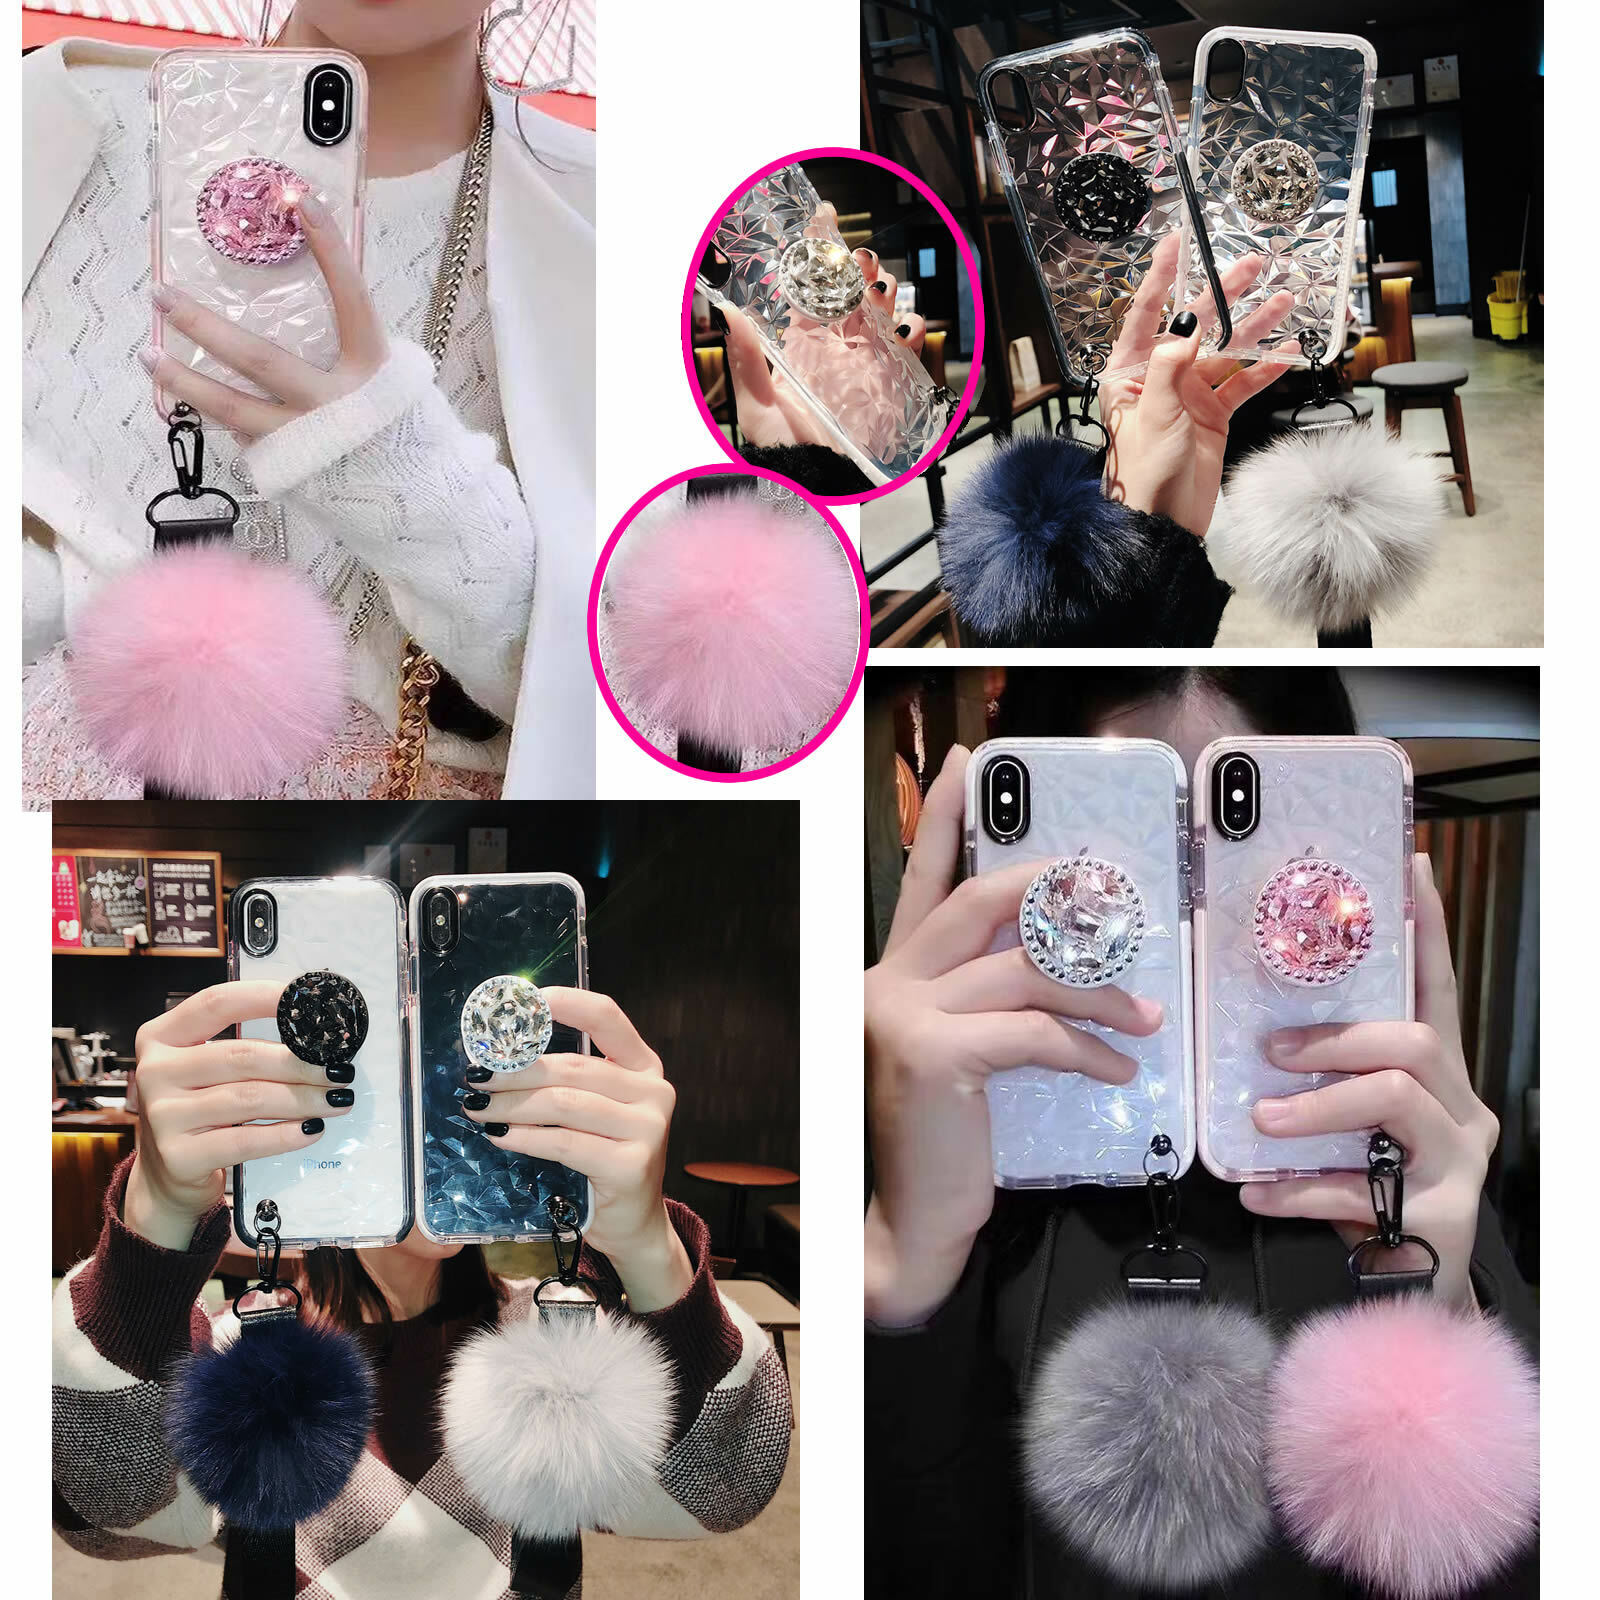 For iphone 11PROMAX XR 7p/8p Bling diamond fur ball Strap so